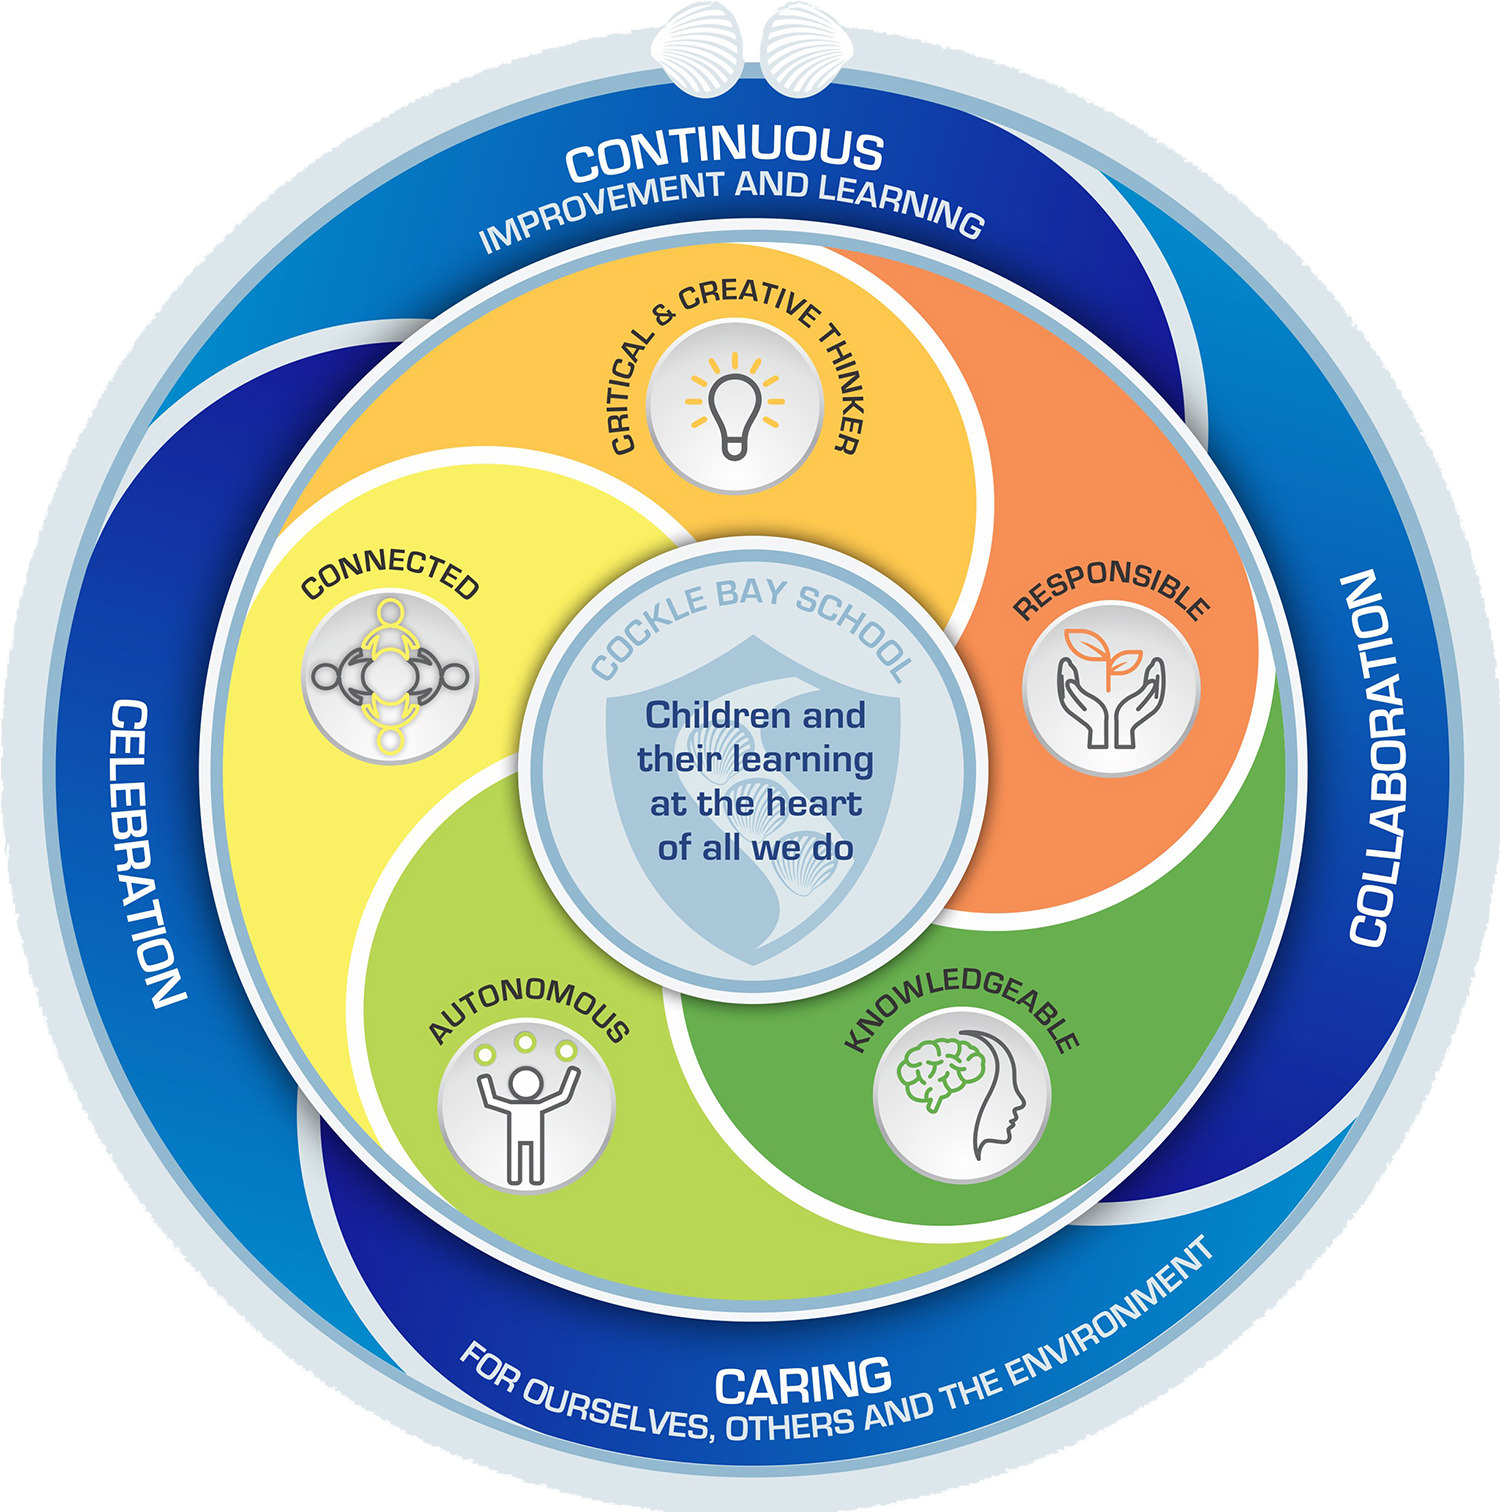 The 4 Cs are Collaboration, Caring, Continuous Improvement, Celebration